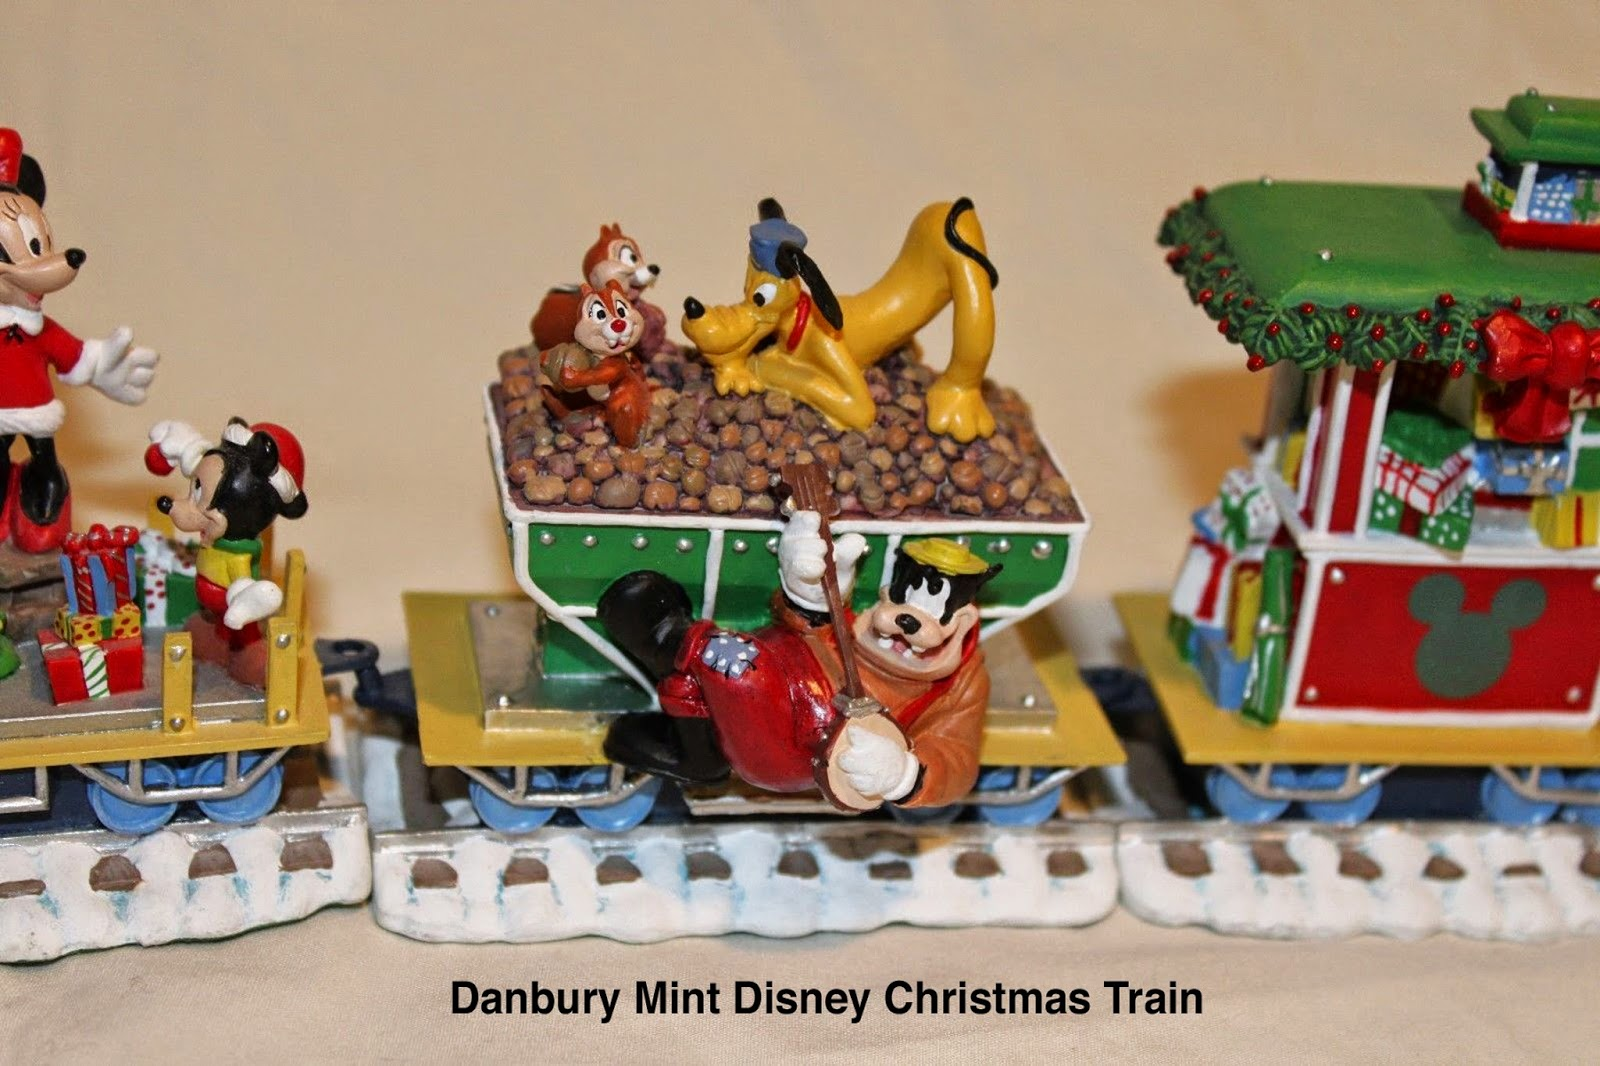 the danbury mint disney mickey mouse christmas train has a banjo playing pete riding the rails - Disney Christmas Train